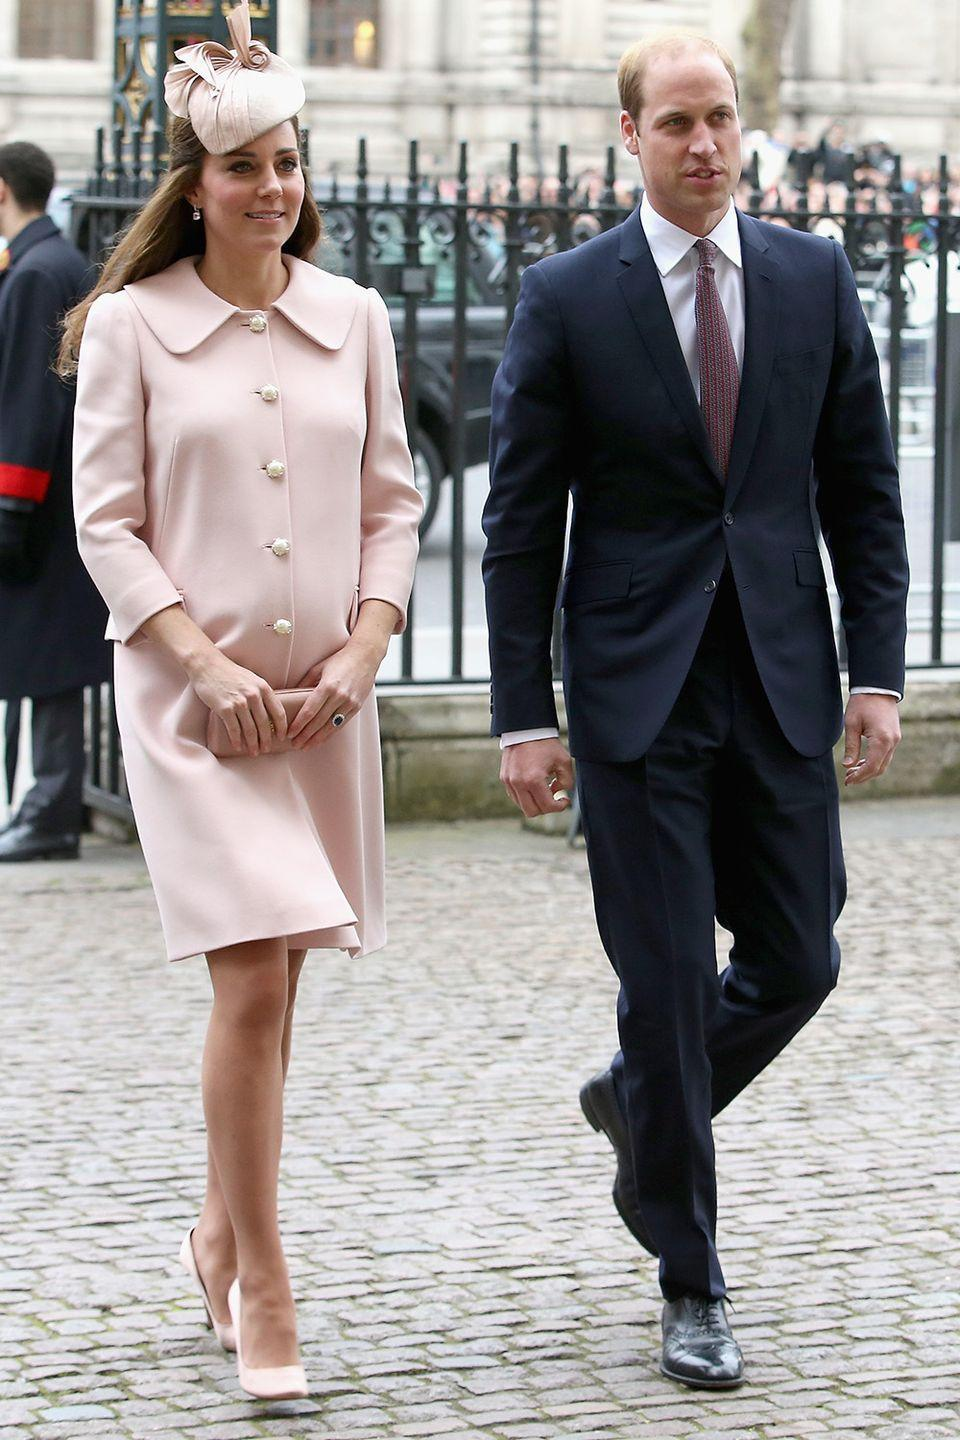 """<p>Even Prince William and Kate haven't broken this tradition yet. It's <a href=""""http://www.bbc.com/news/uk-22976895"""" rel=""""nofollow noopener"""" target=""""_blank"""" data-ylk=""""slk:rumored"""" class=""""link rapid-noclick-resp"""">rumored</a> they didn't even know Prince George's gender themselves. </p>"""